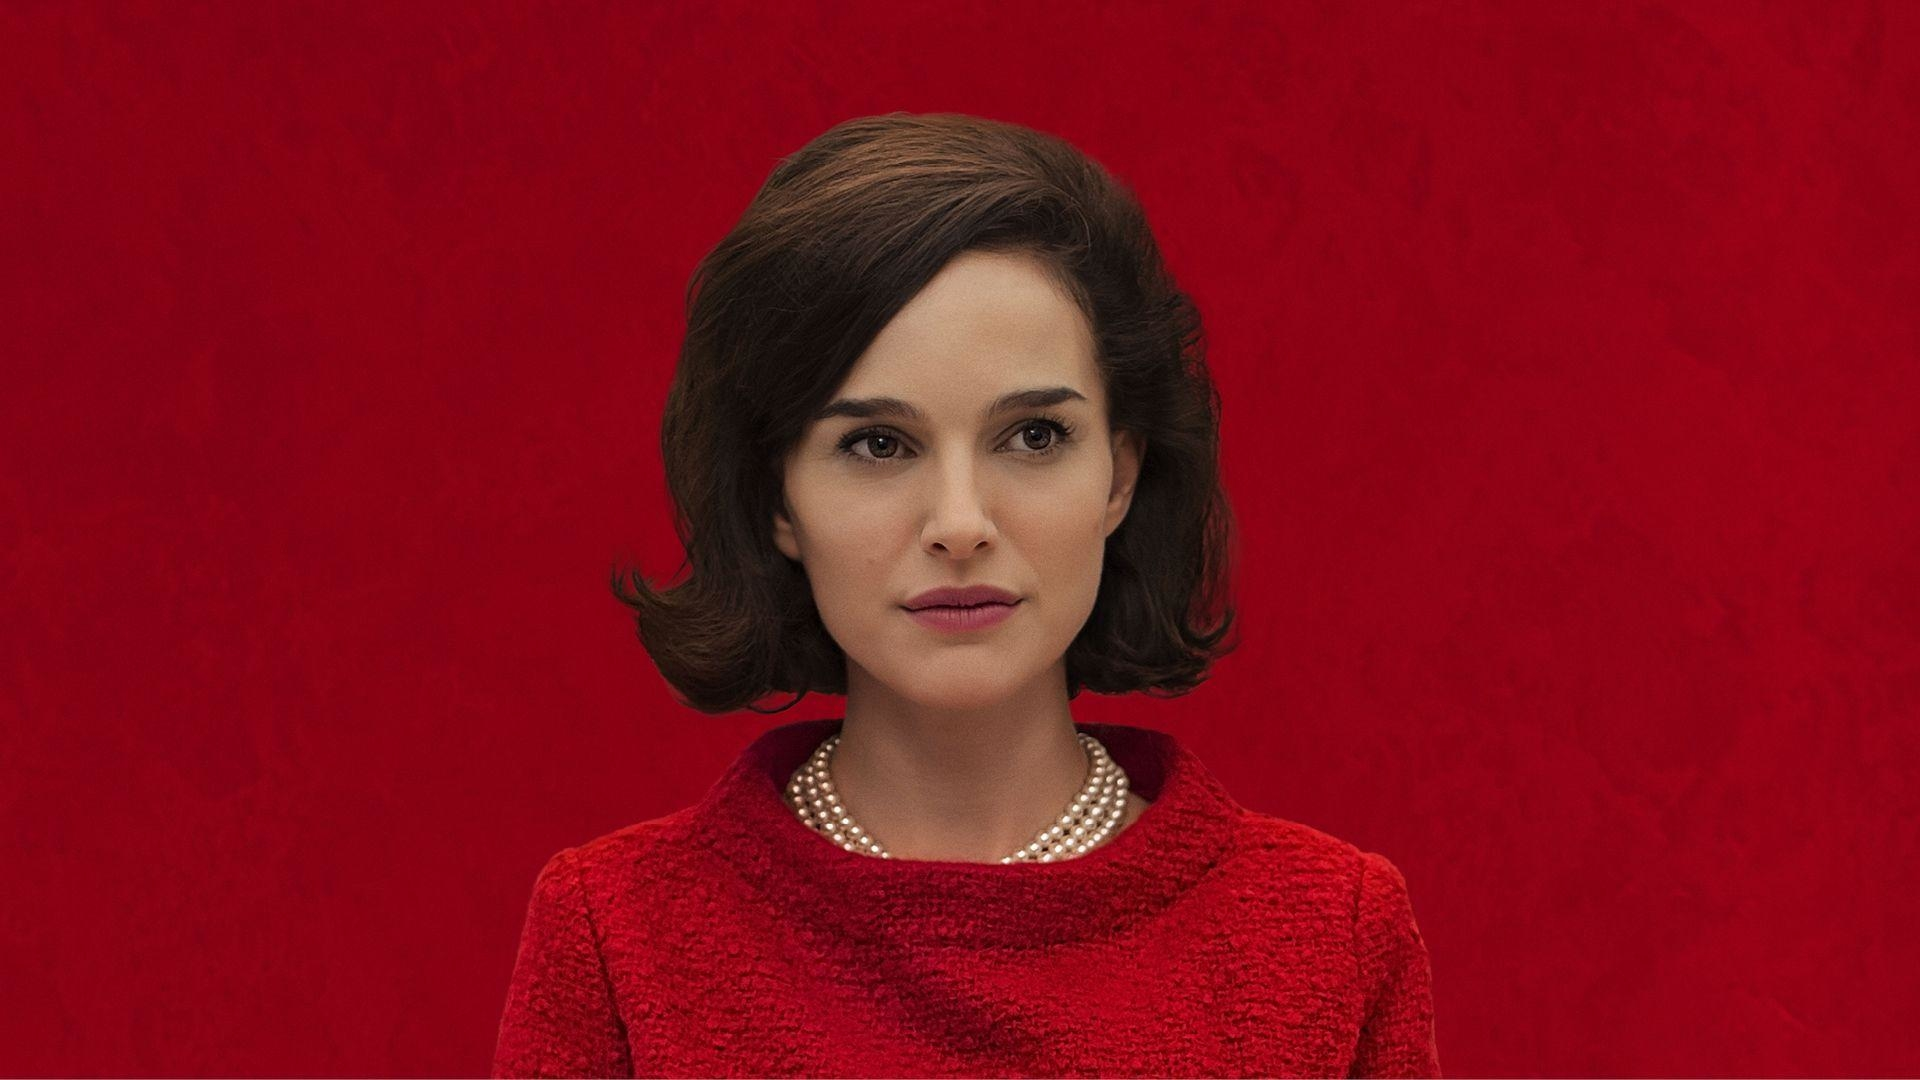 Natalie Portman Dons Iconic Piaget Watch In New Film